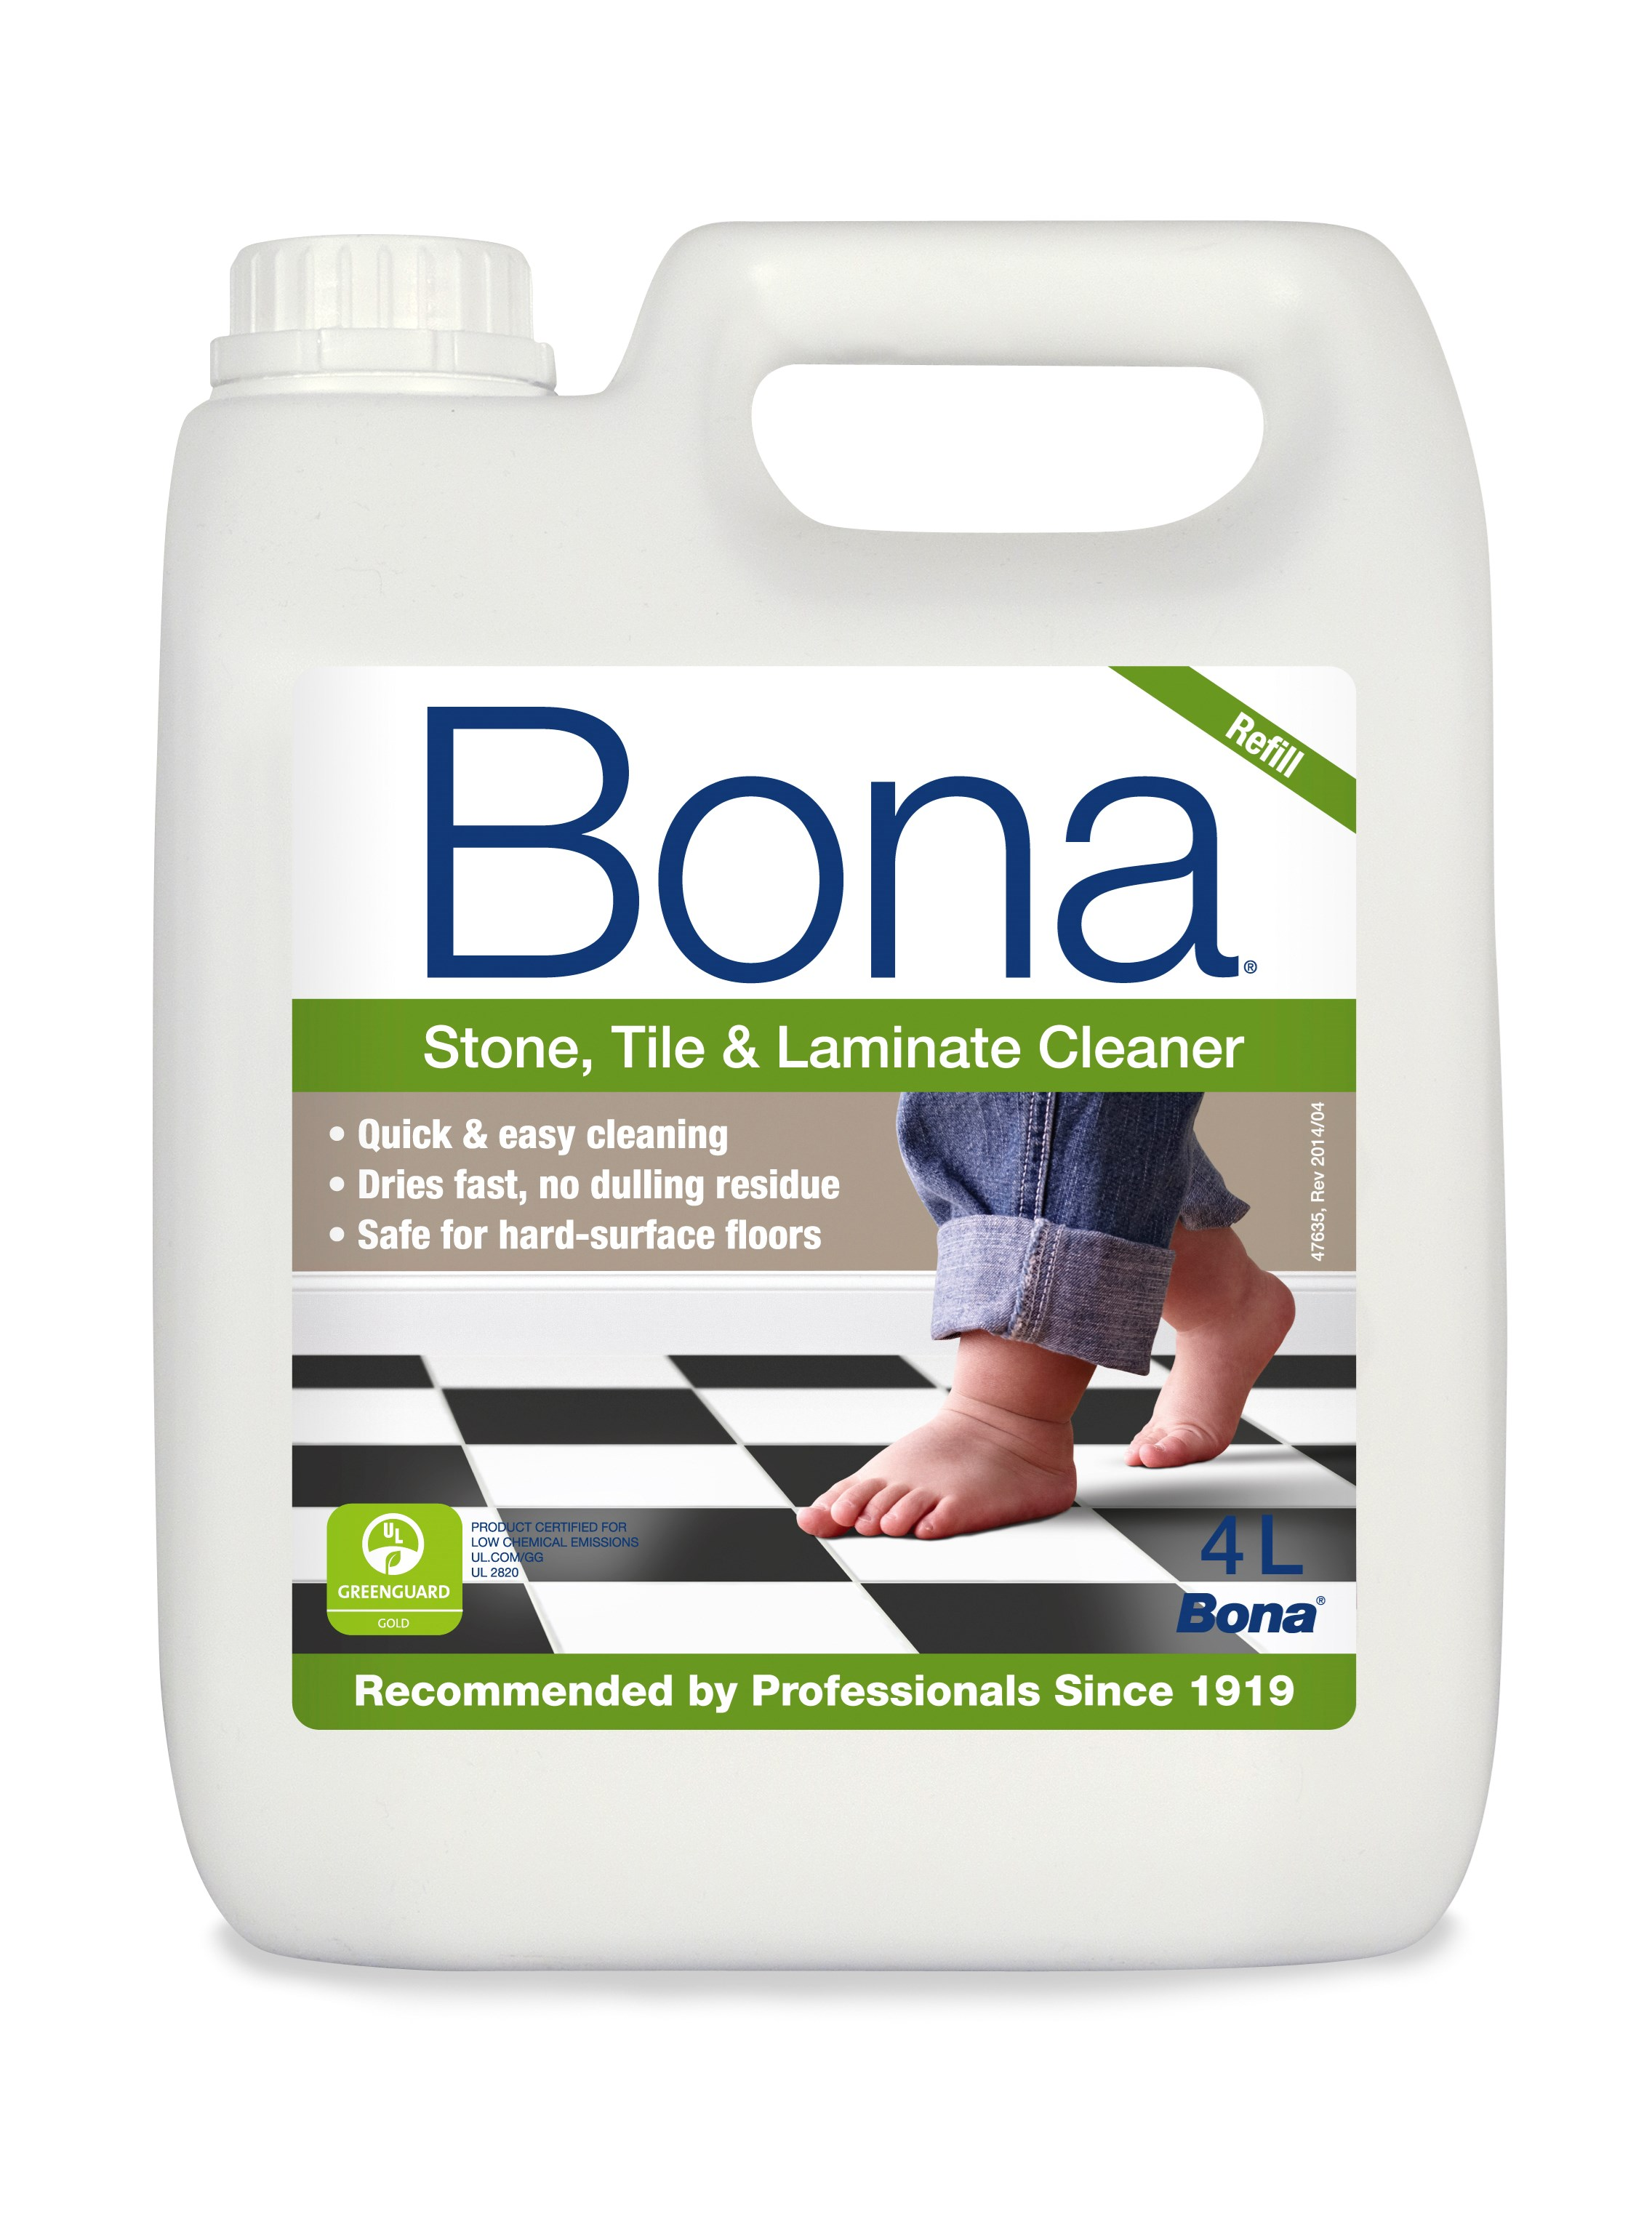 Products to clean tile floors